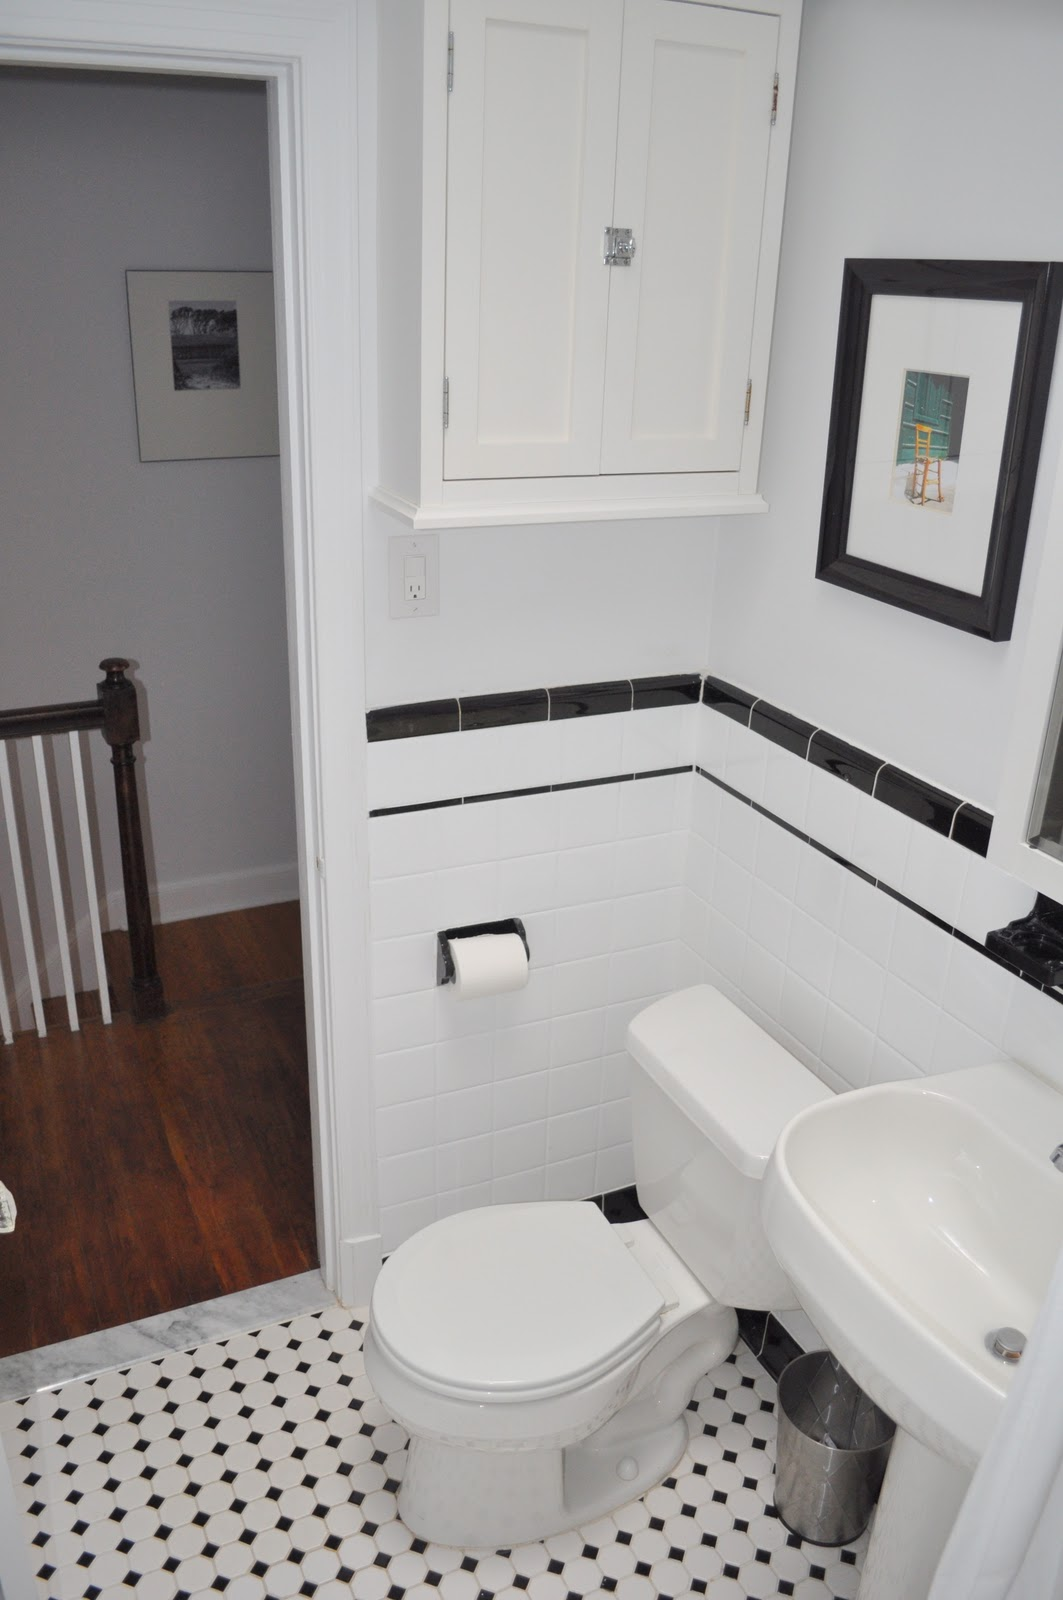 How to decorate a small bathroom in black and white - Tantalizing Floor And Wall Design With White Tile Bathroom Themes